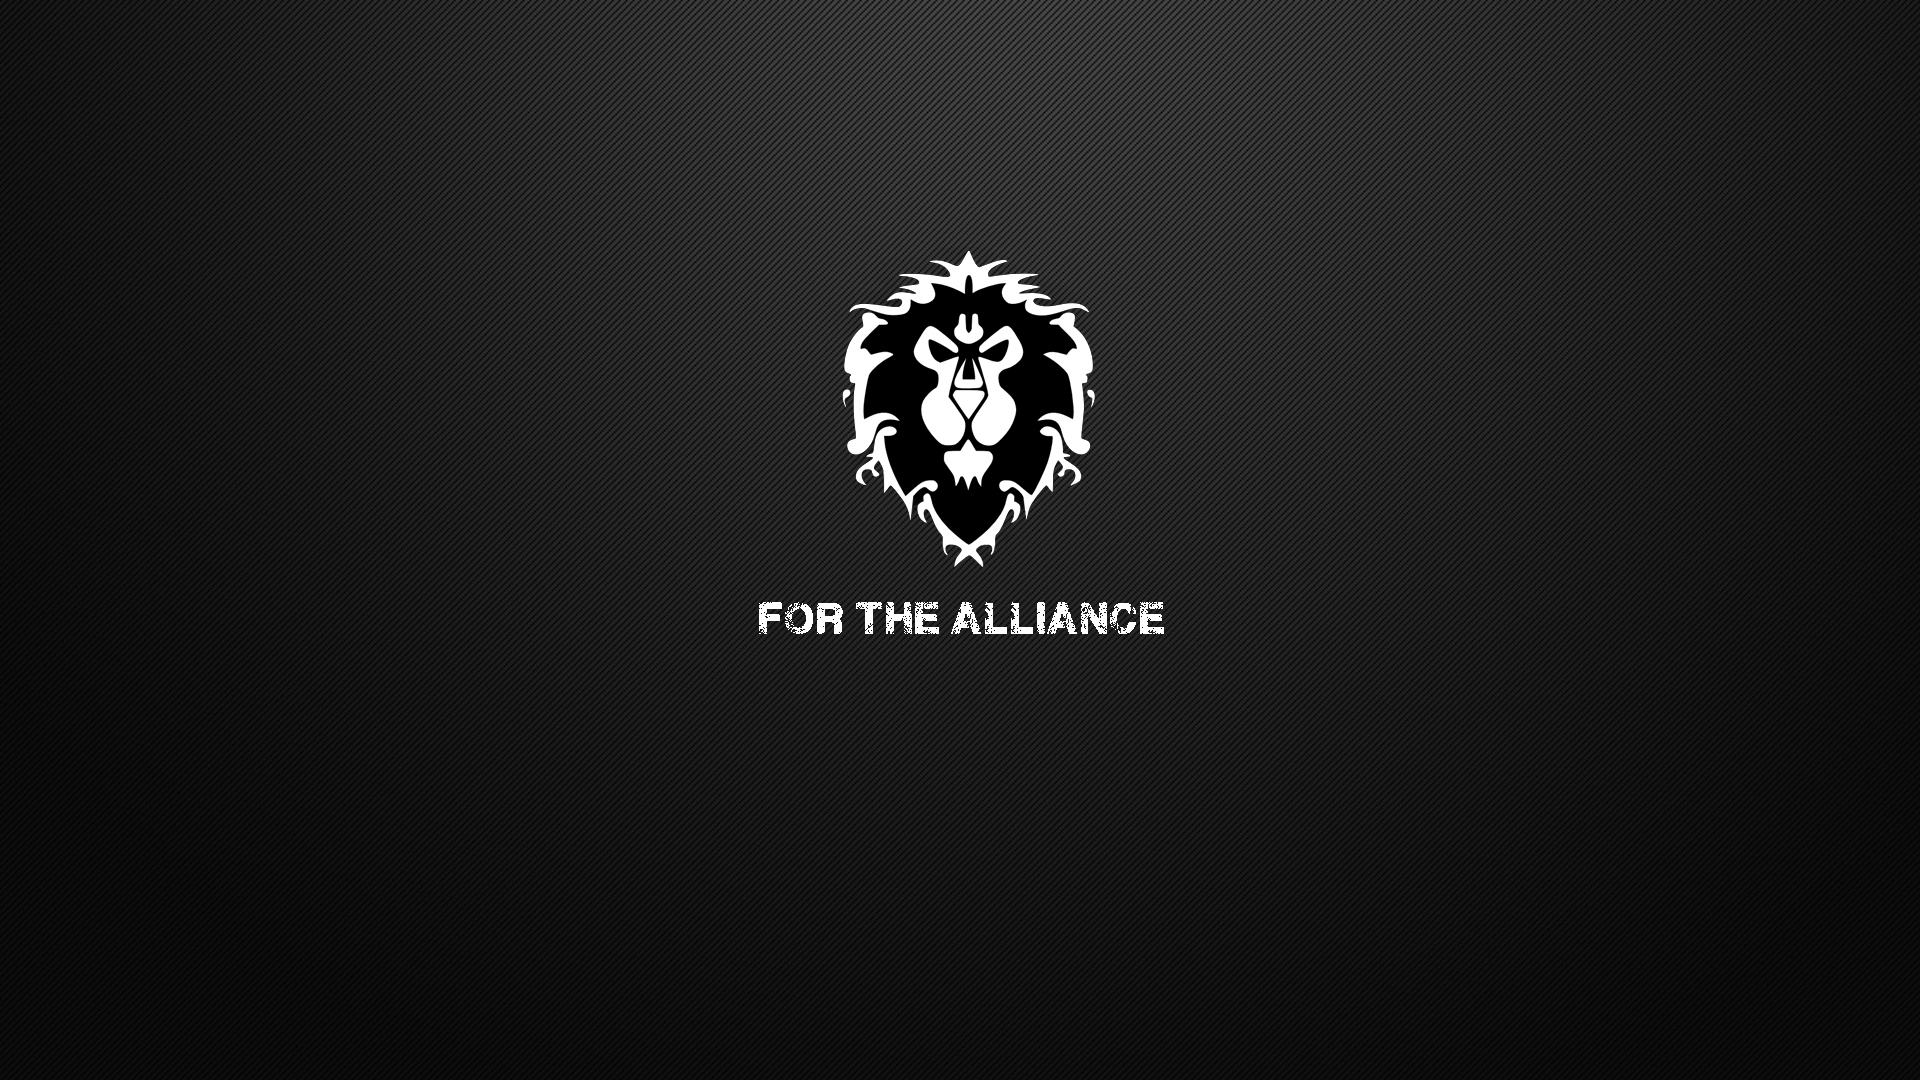 Free Download World Of Warcraft For The Alliance Wallpaper